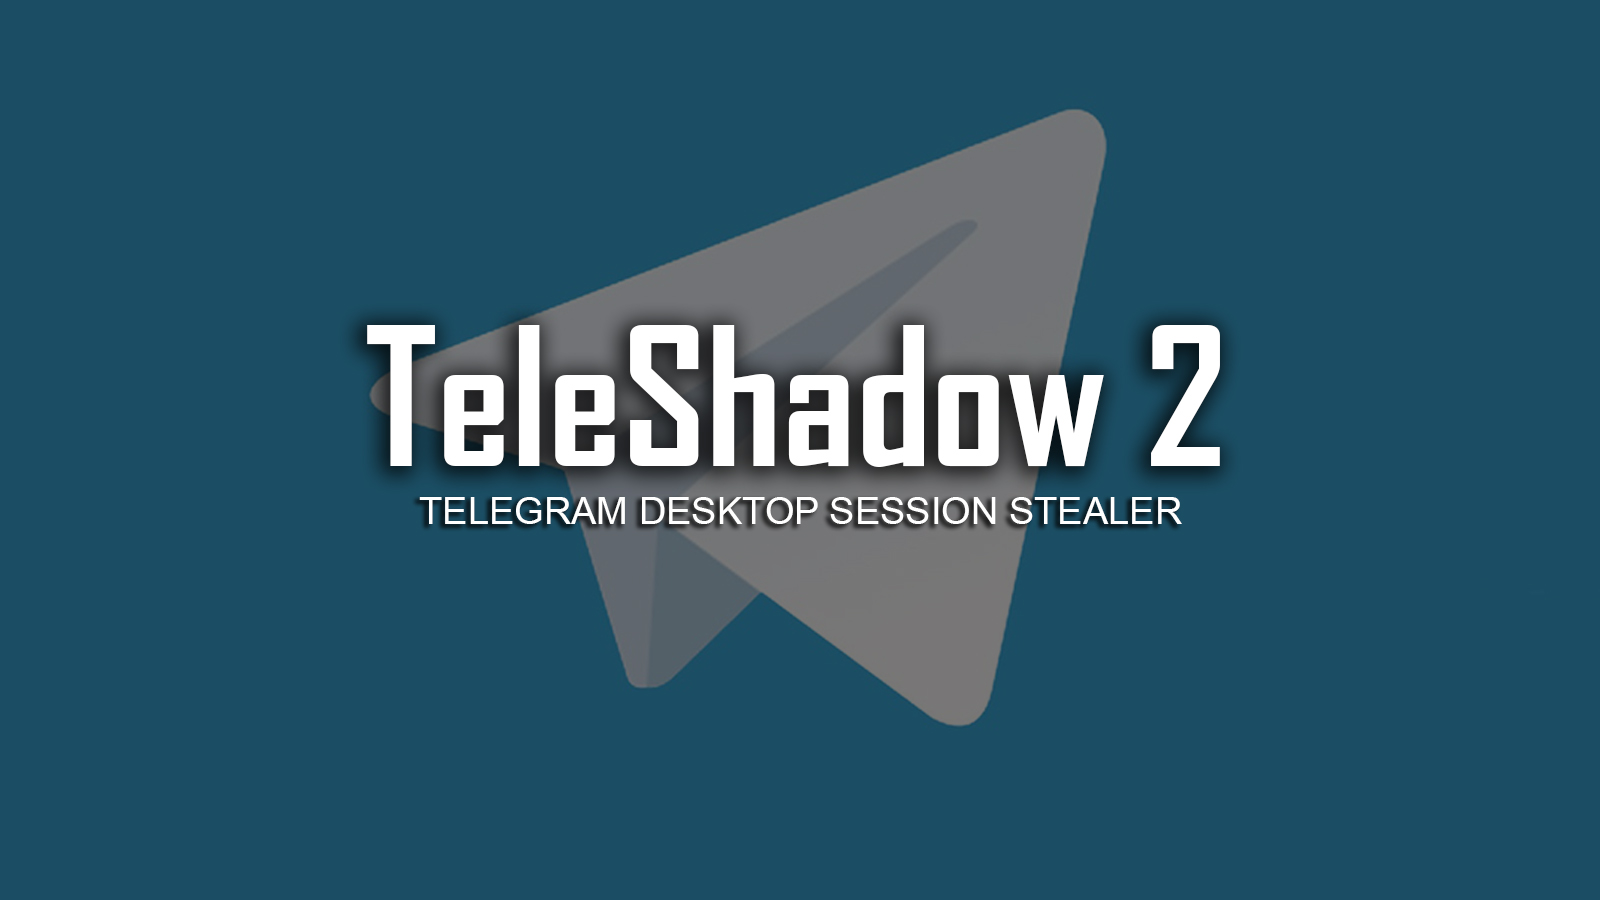 TeleShadow 2 - Telegram Desktop Session Stealer